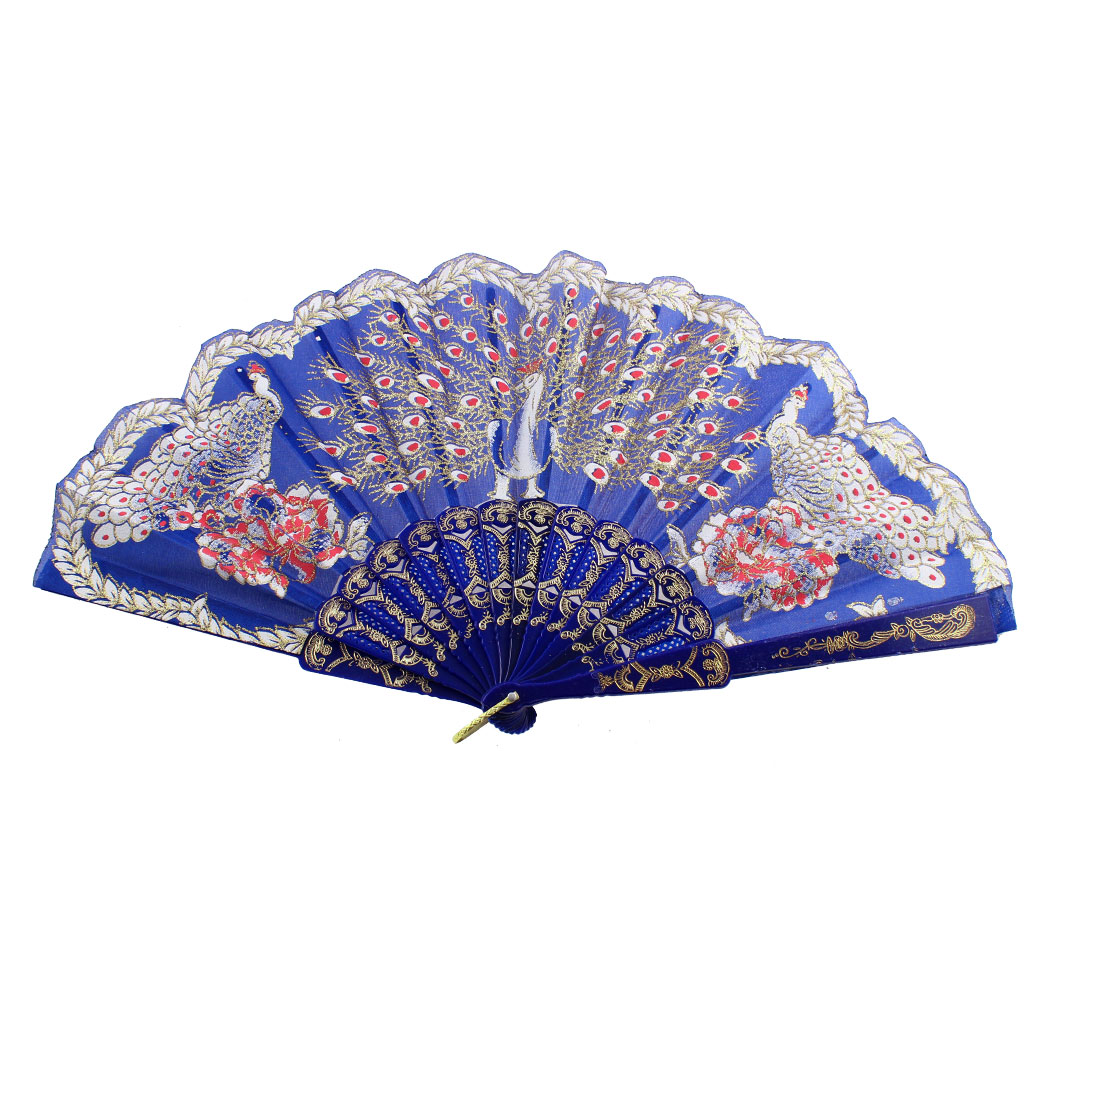 Chinese Style D Ring Detail Ribs Peacock Pattern Folded Hand Fan Blue